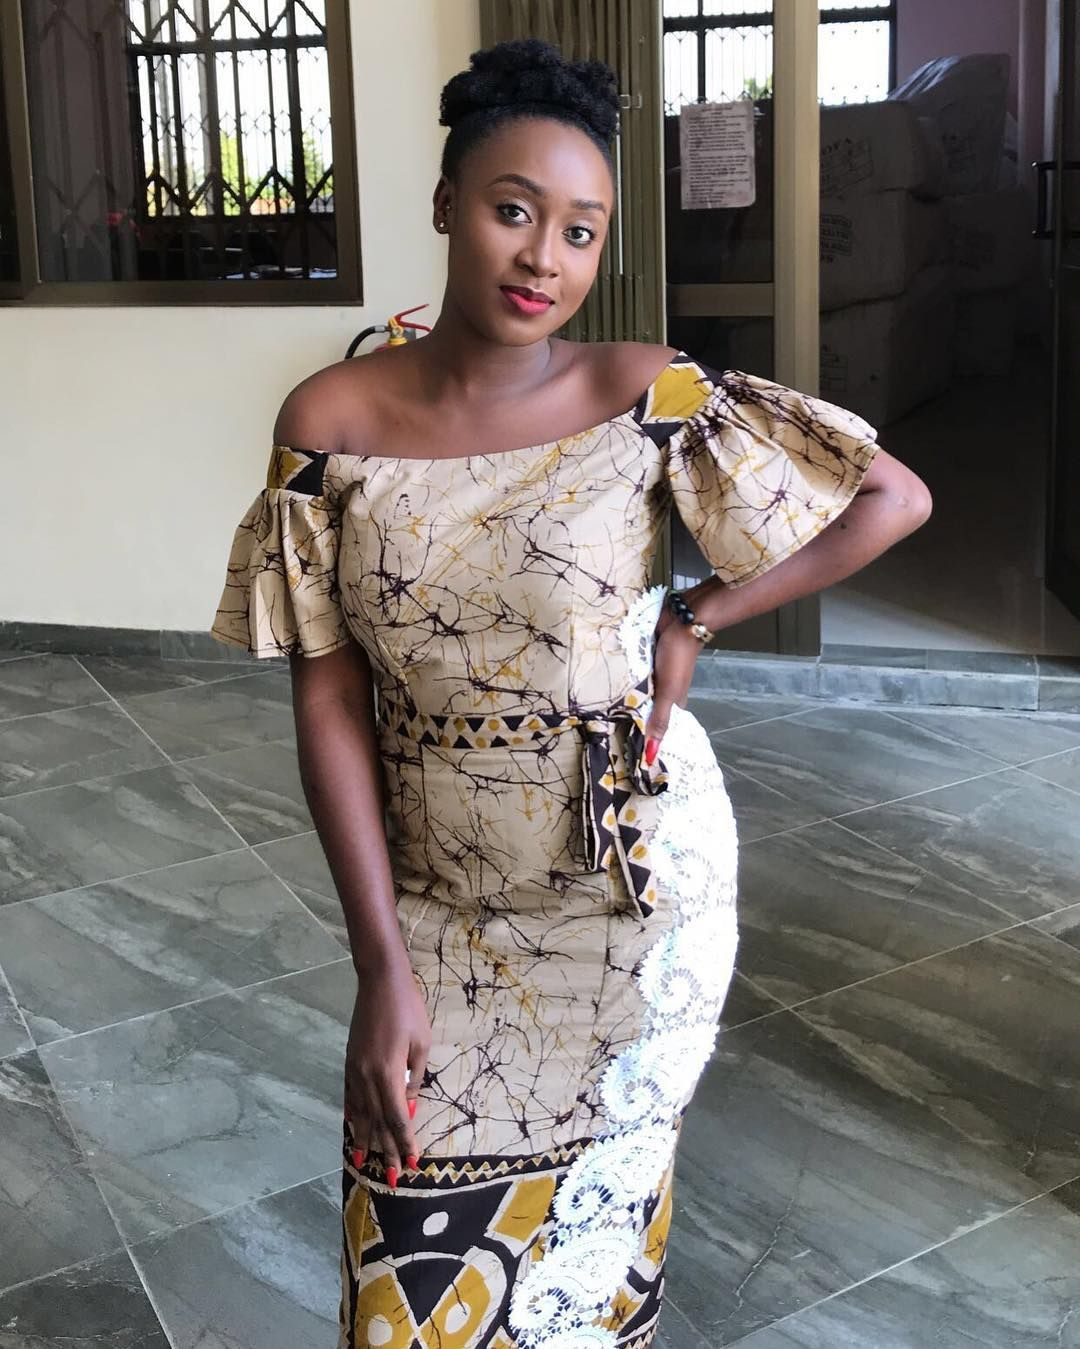 Les 80 Meilleures Images De Robes Droites 4 Robe Africaine Mode Africaine Robe Droite